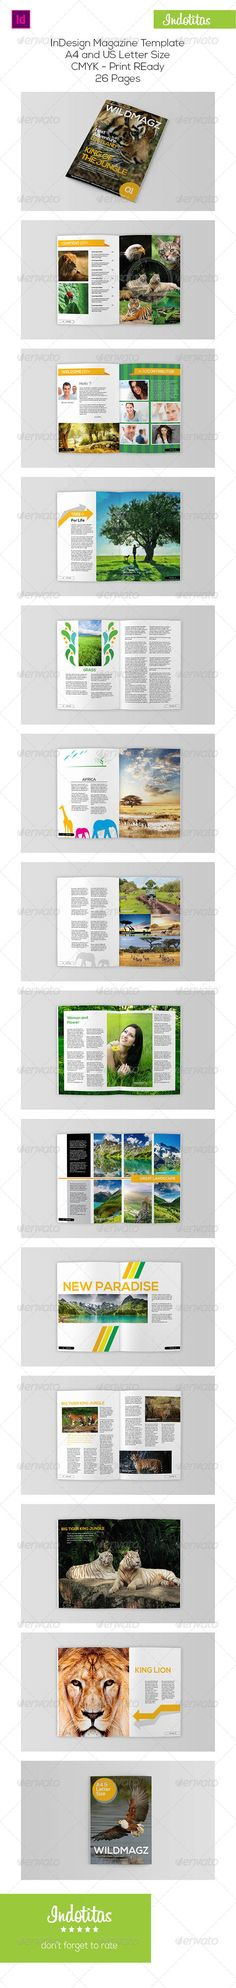 Animal Magazine Template by indotitas Latest InDesign Magazine Template by Indotitas :Professional InDesign magazine template that can be used for any type of industry